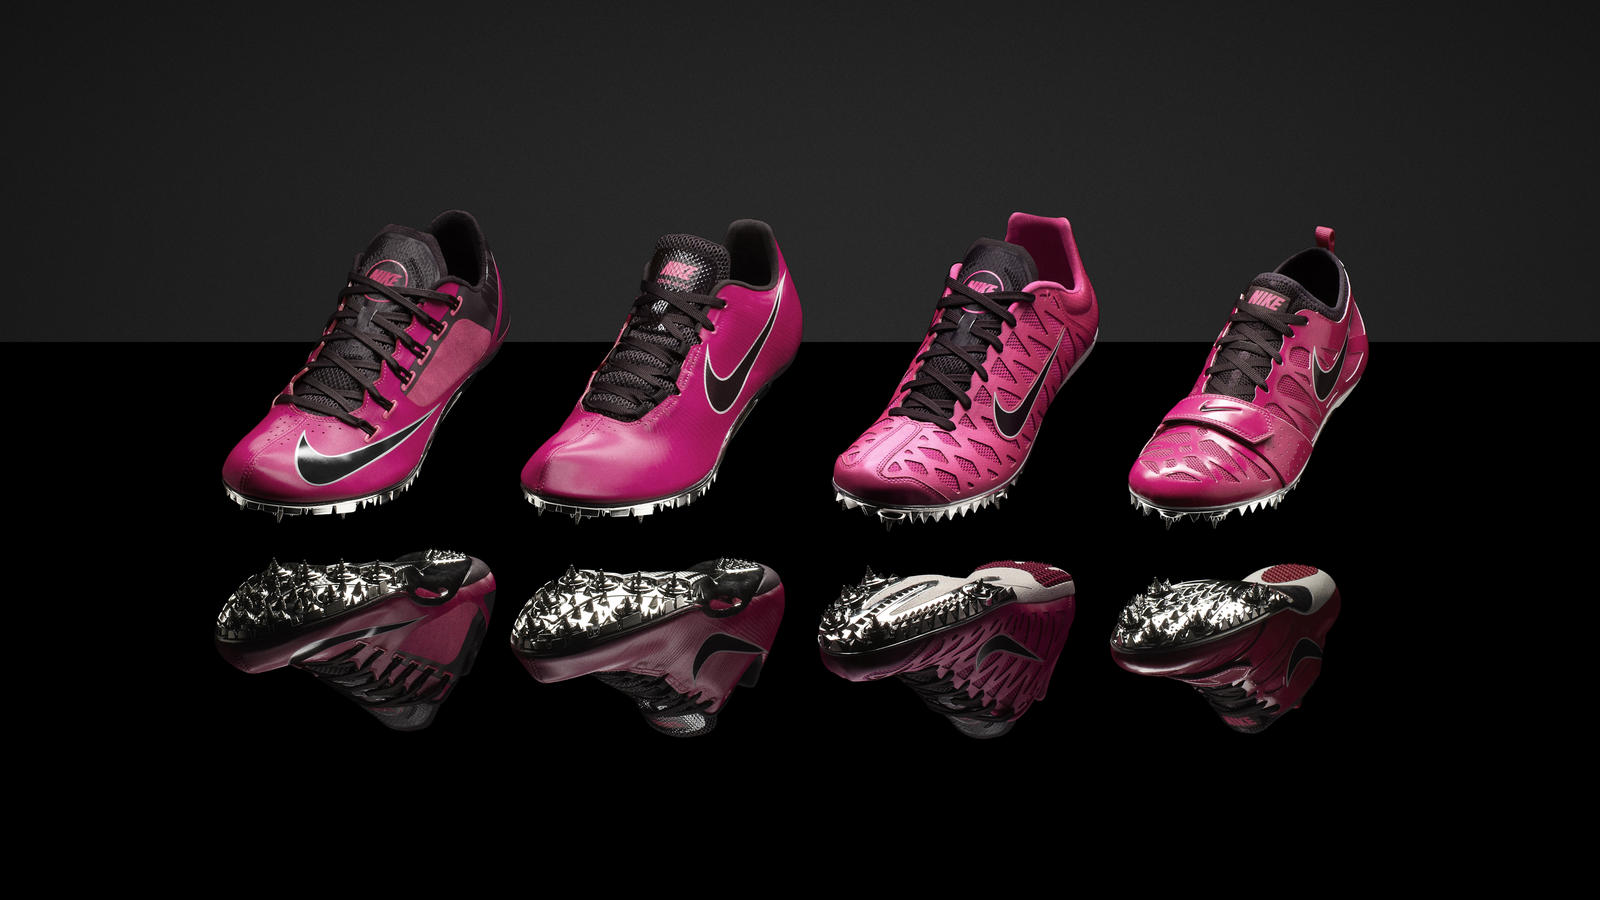 pinkfoil_nike_sprint_groups